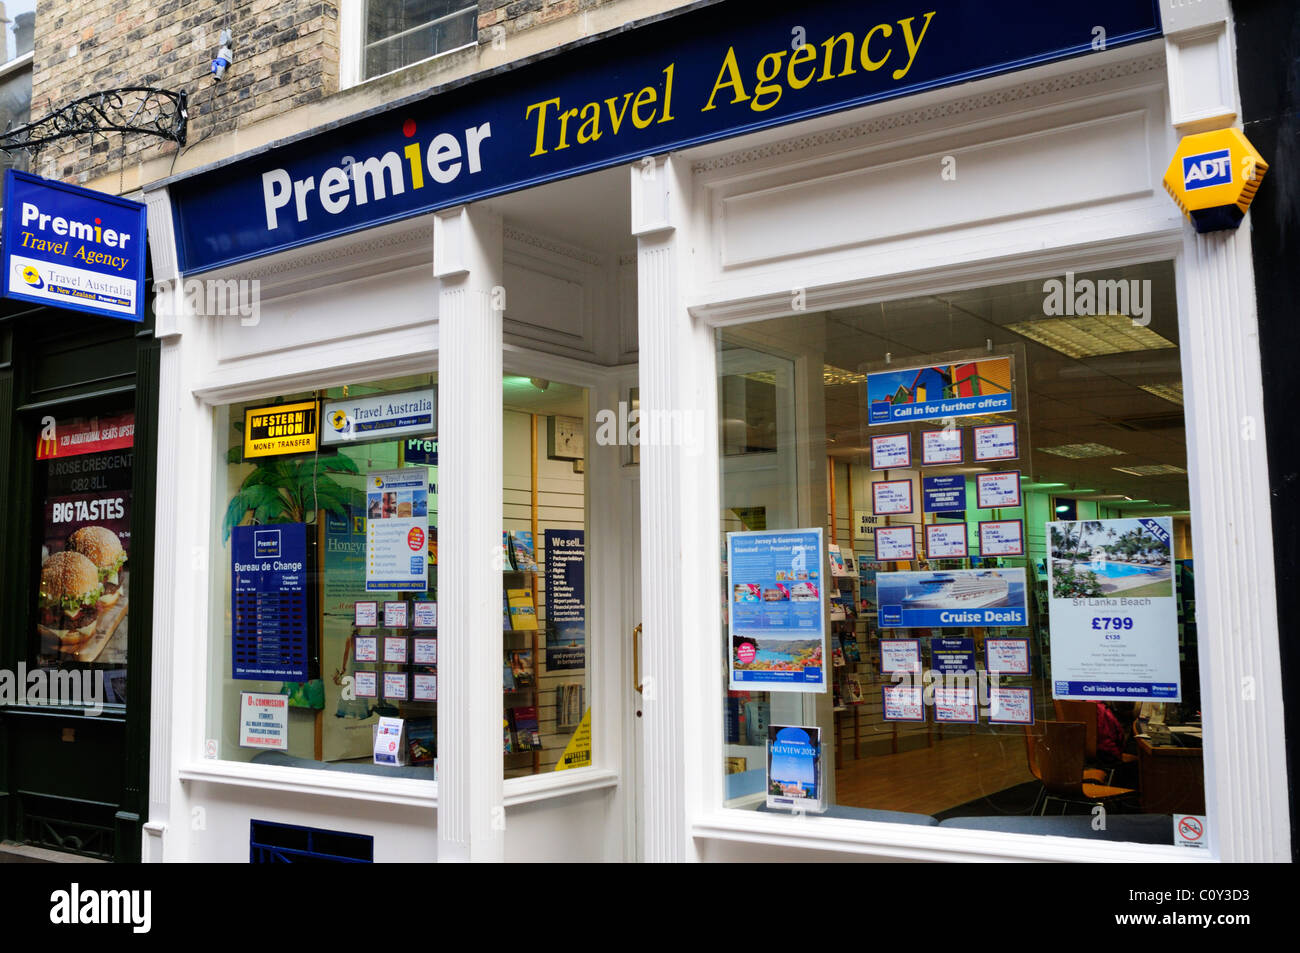 Premier Travel Agency, Rose Crescent, Cambridge, England, UK Stockbild